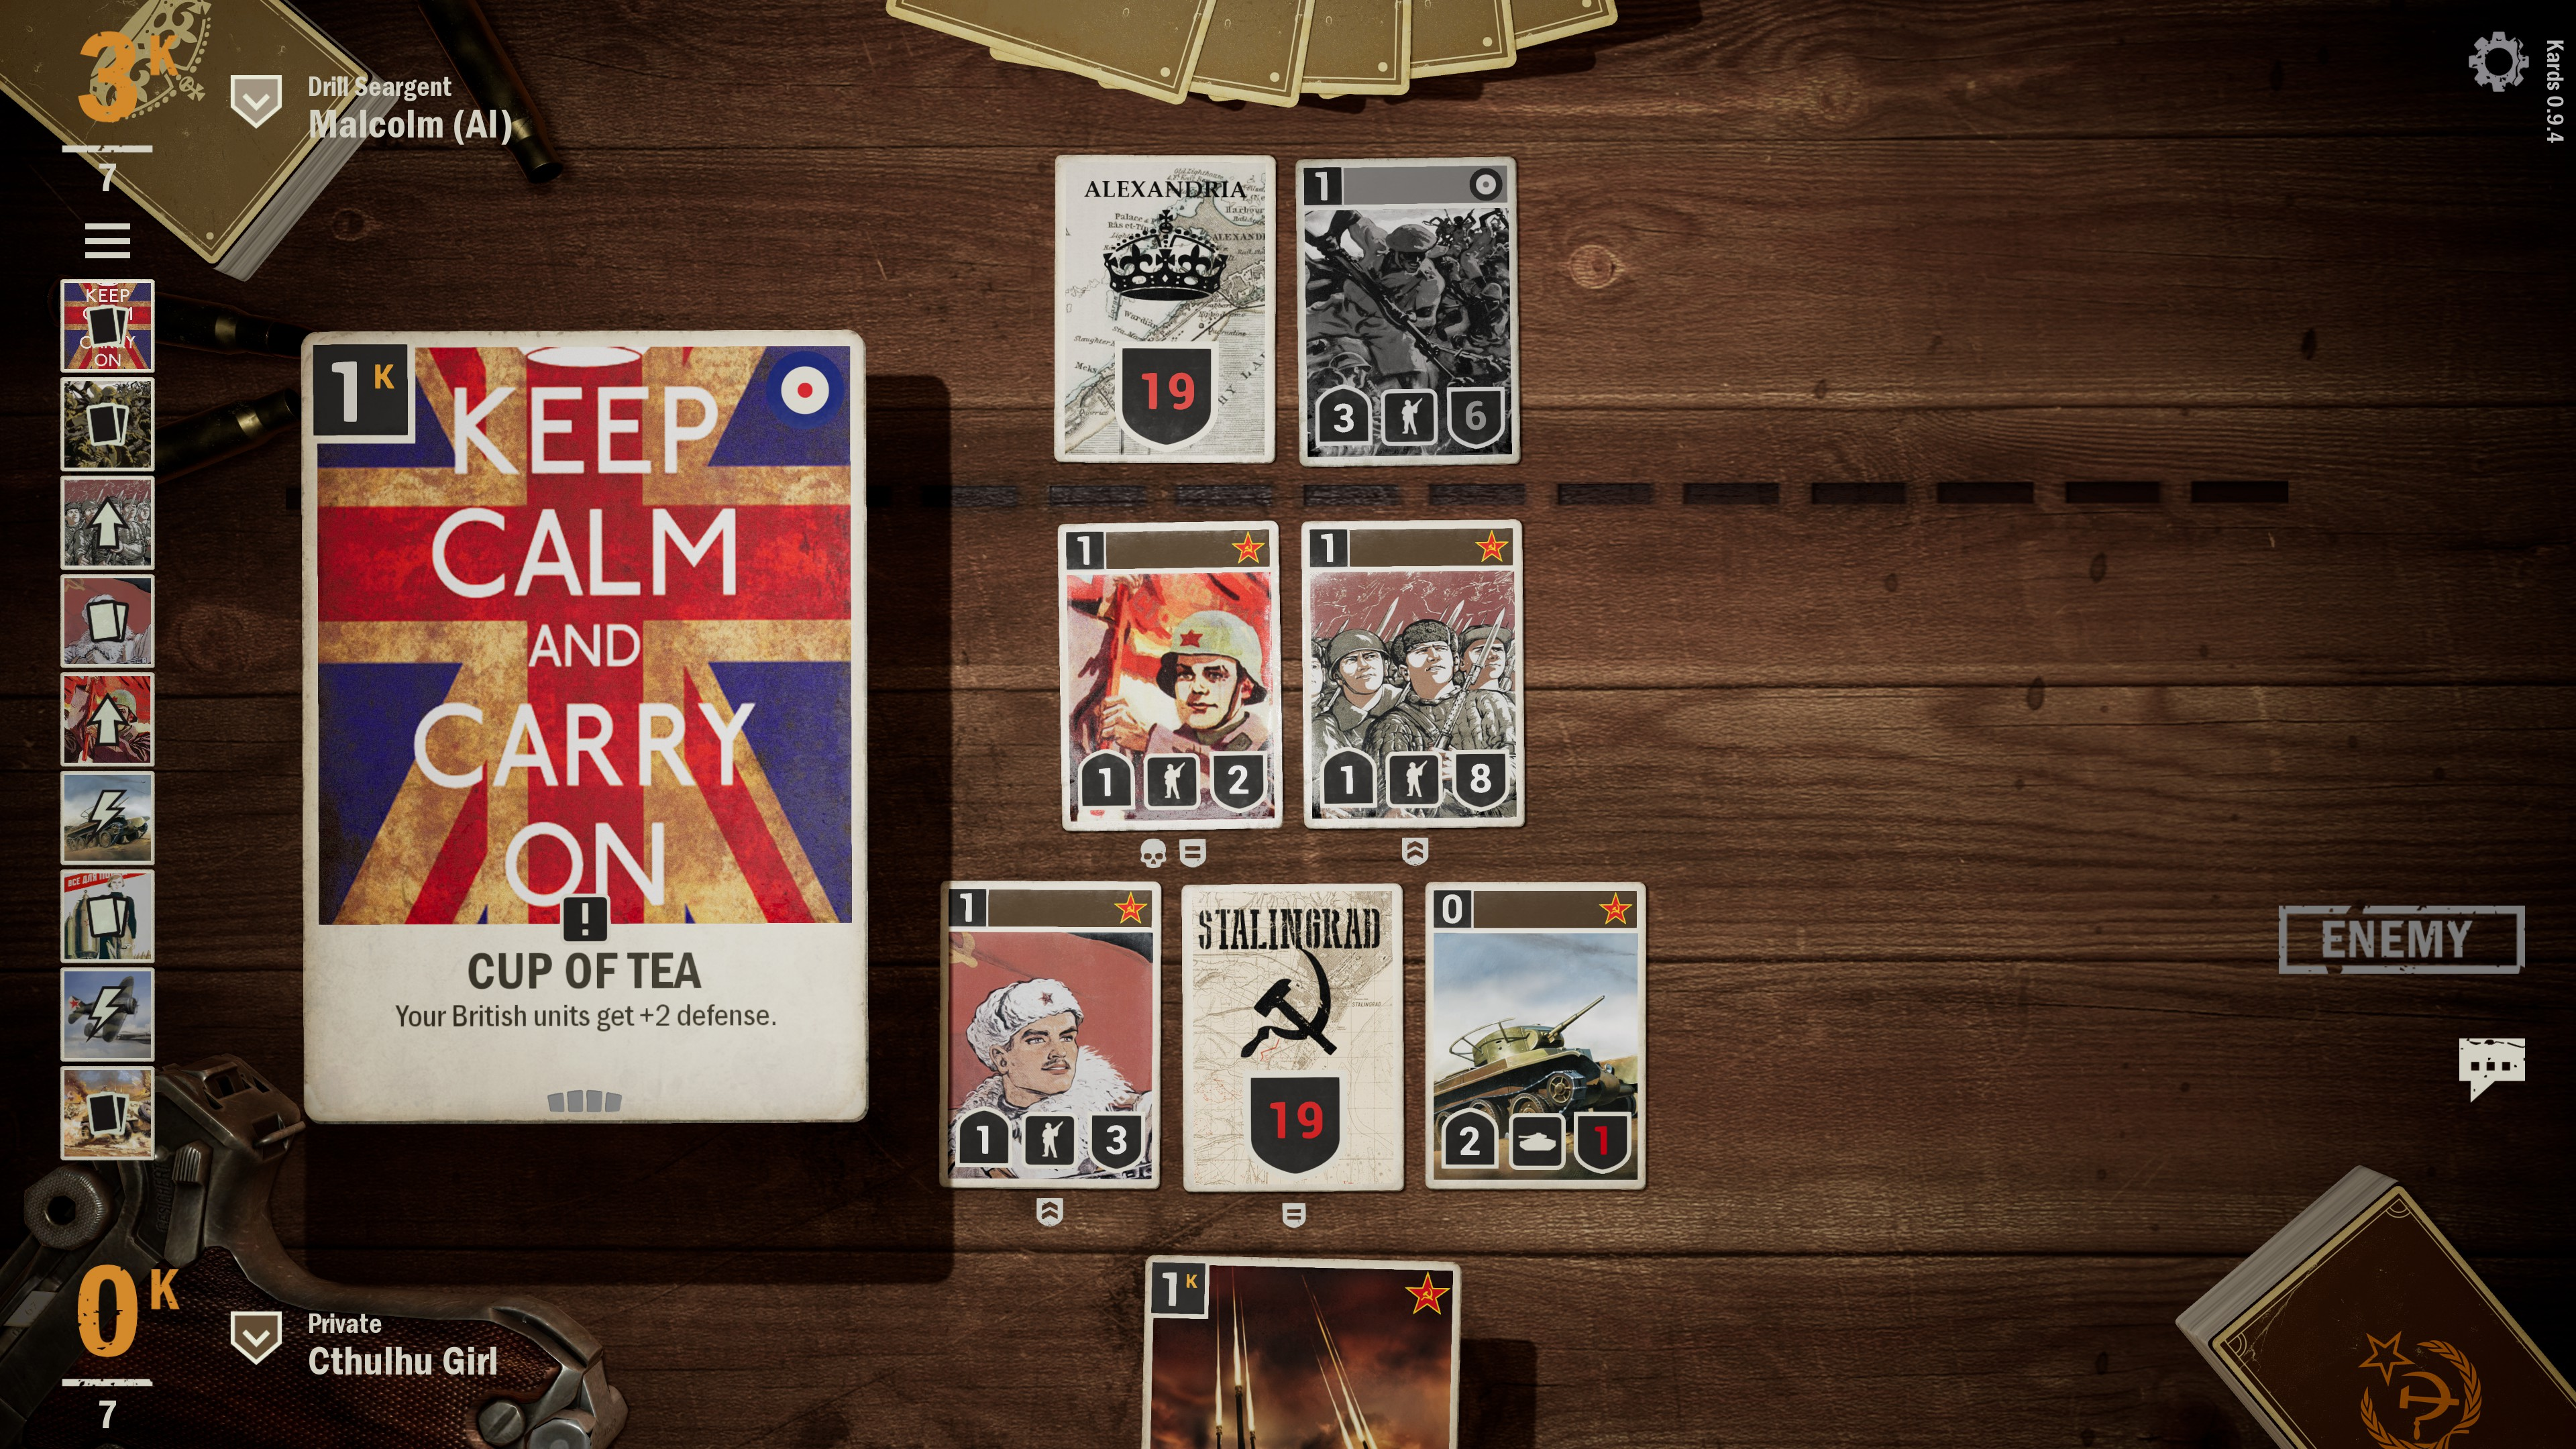 Britain order card called Cup of Tea. The image shows a british flag and the words keep calm and carry on. The card's effect is to give all the player's british units plus 2 defense.